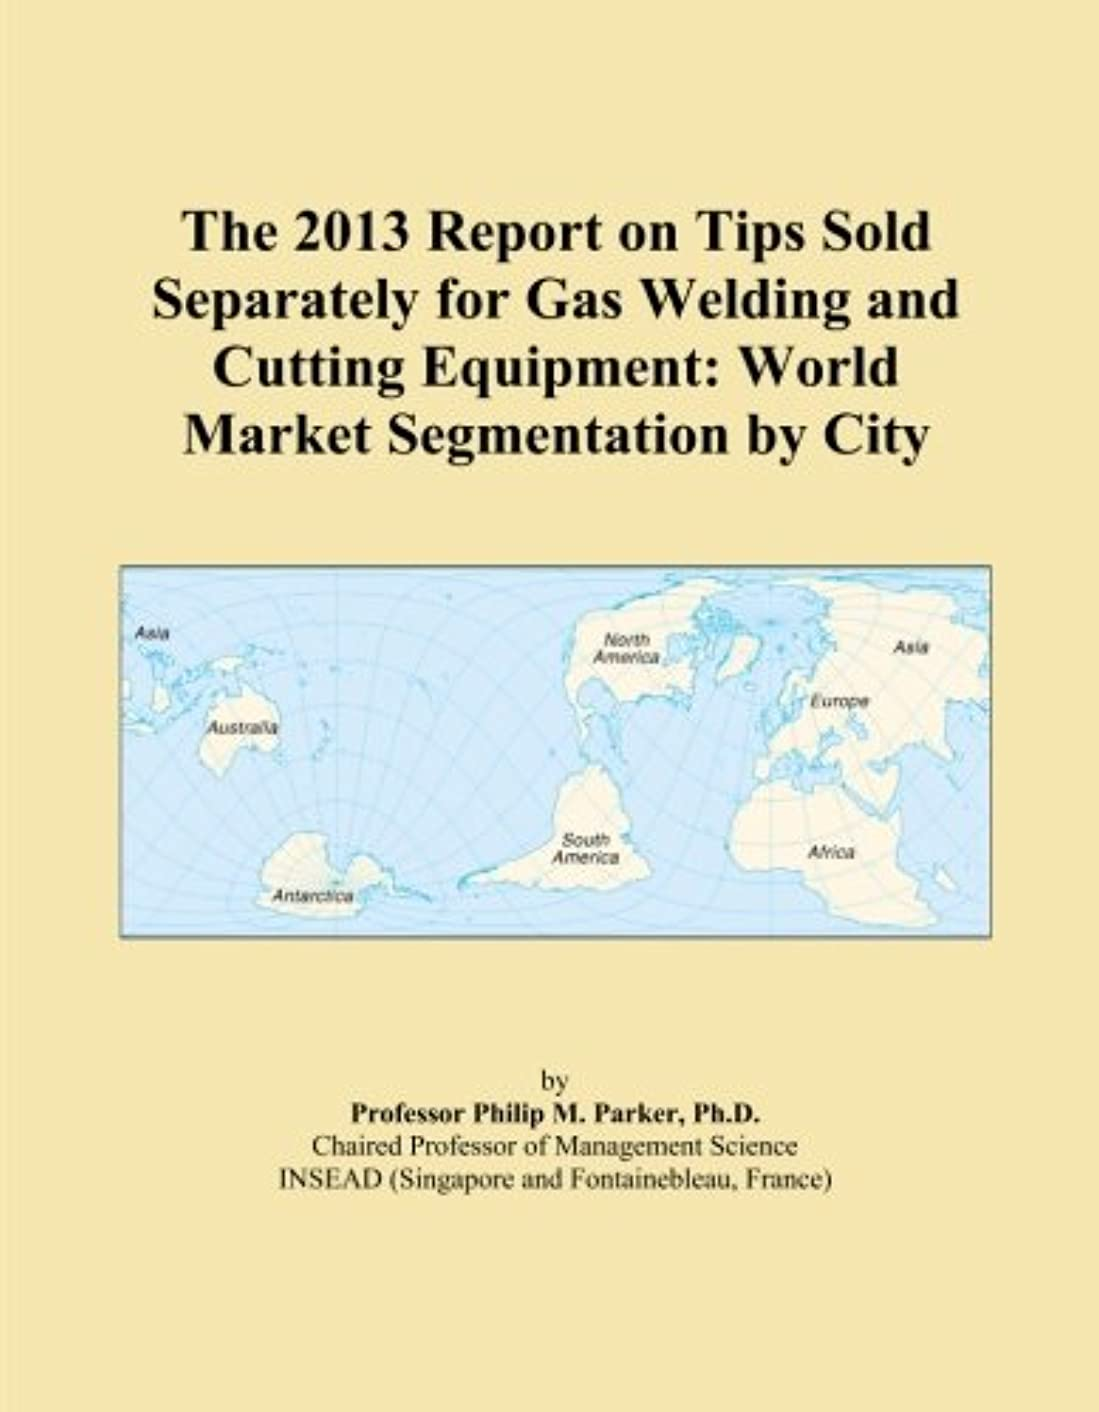 燃料興味故意のThe 2013 Report on Tips Sold Separately for Gas Welding and Cutting Equipment: World Market Segmentation by City